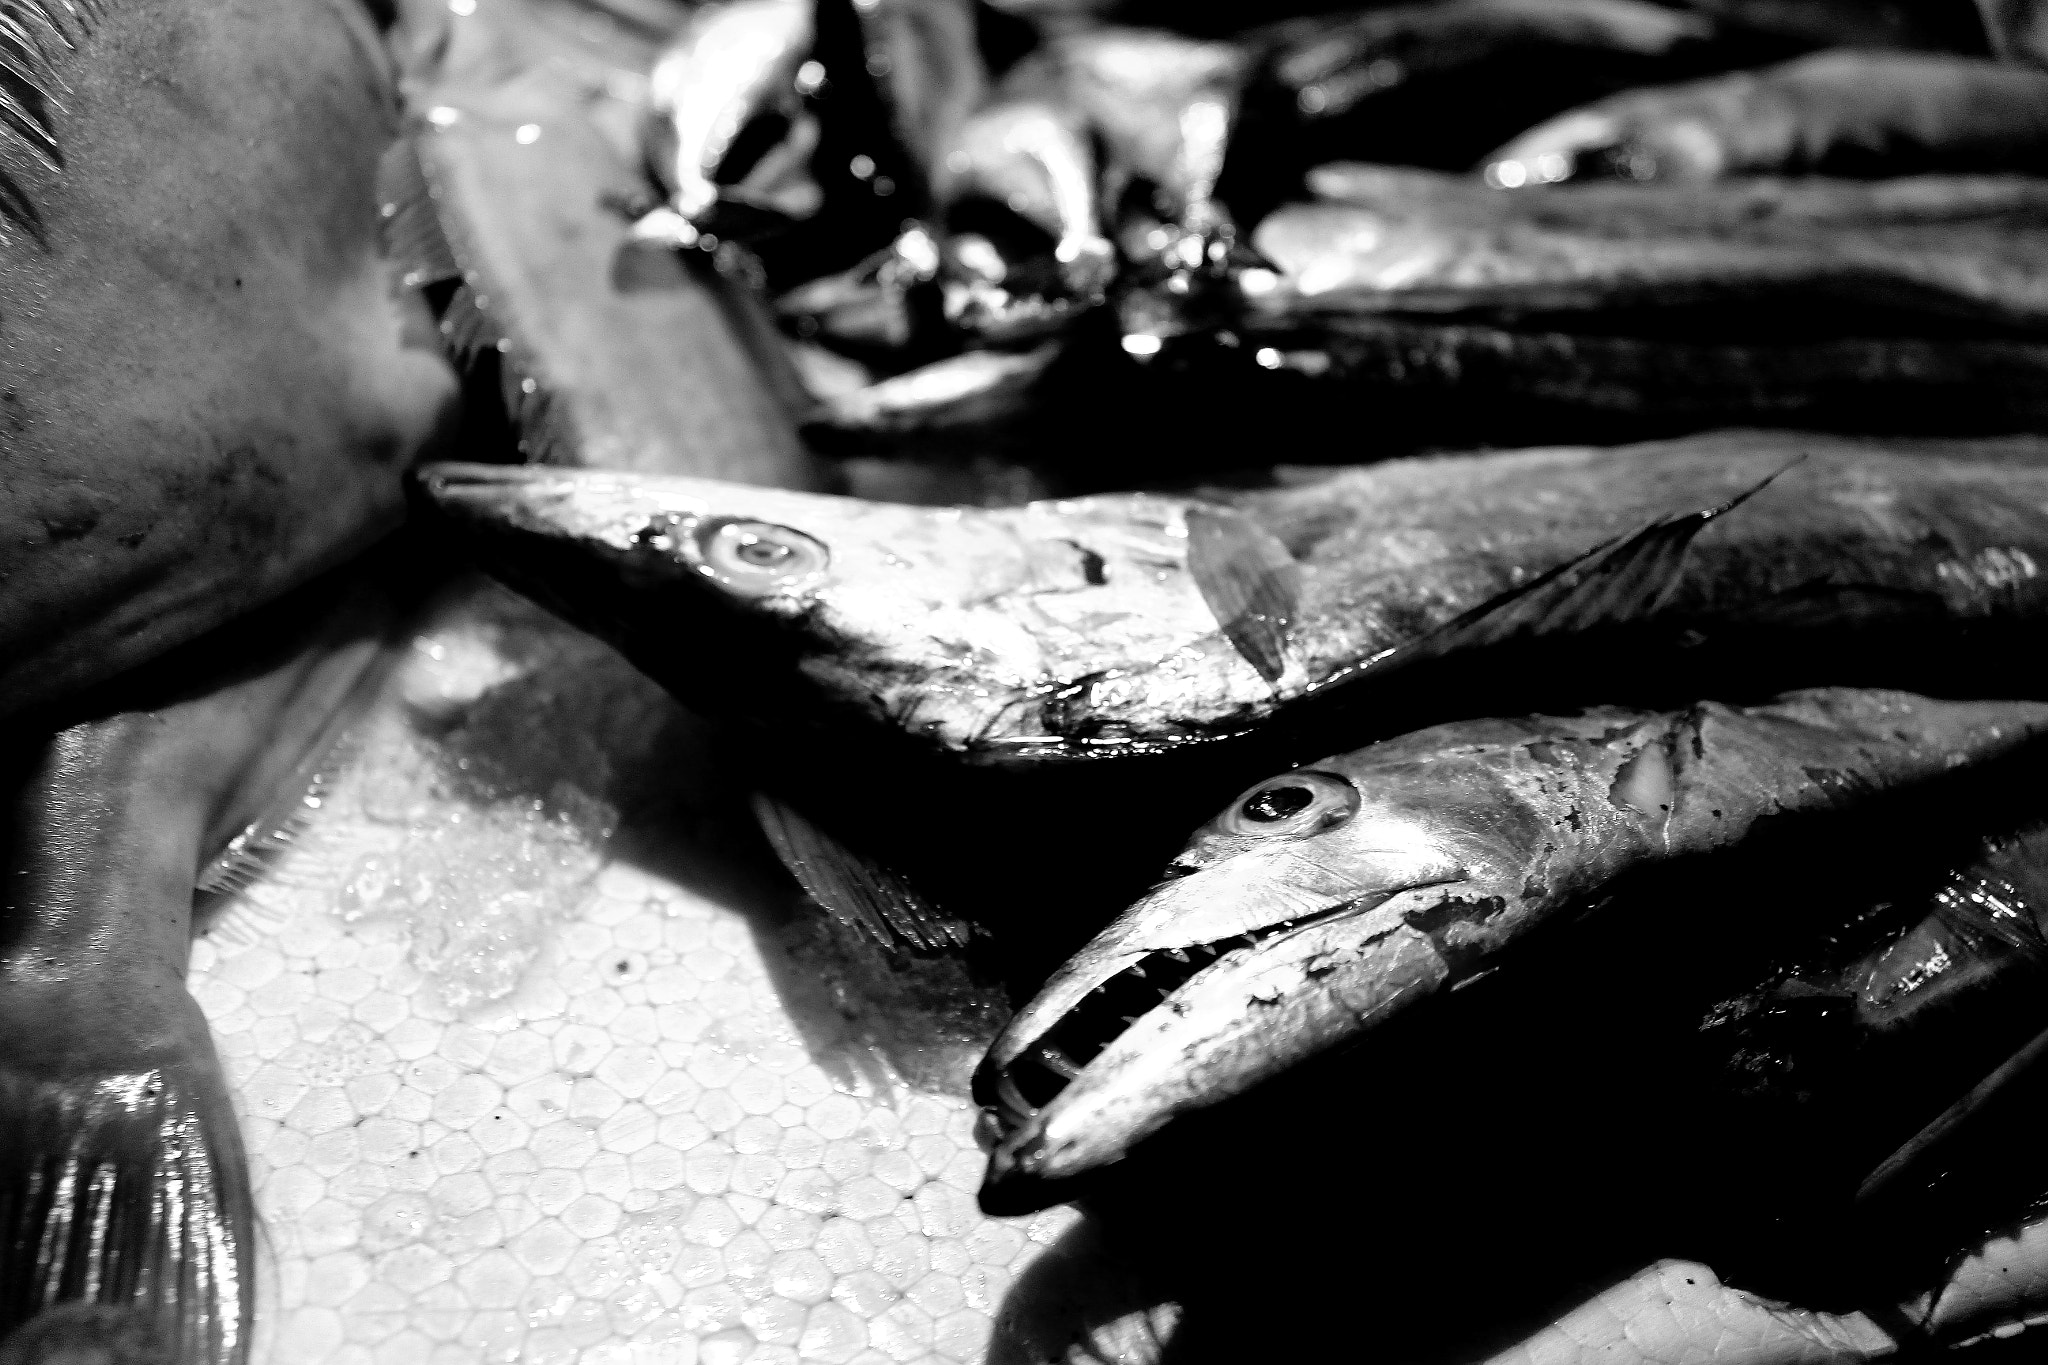 Photograph poor fish by Allen_zx on 500px